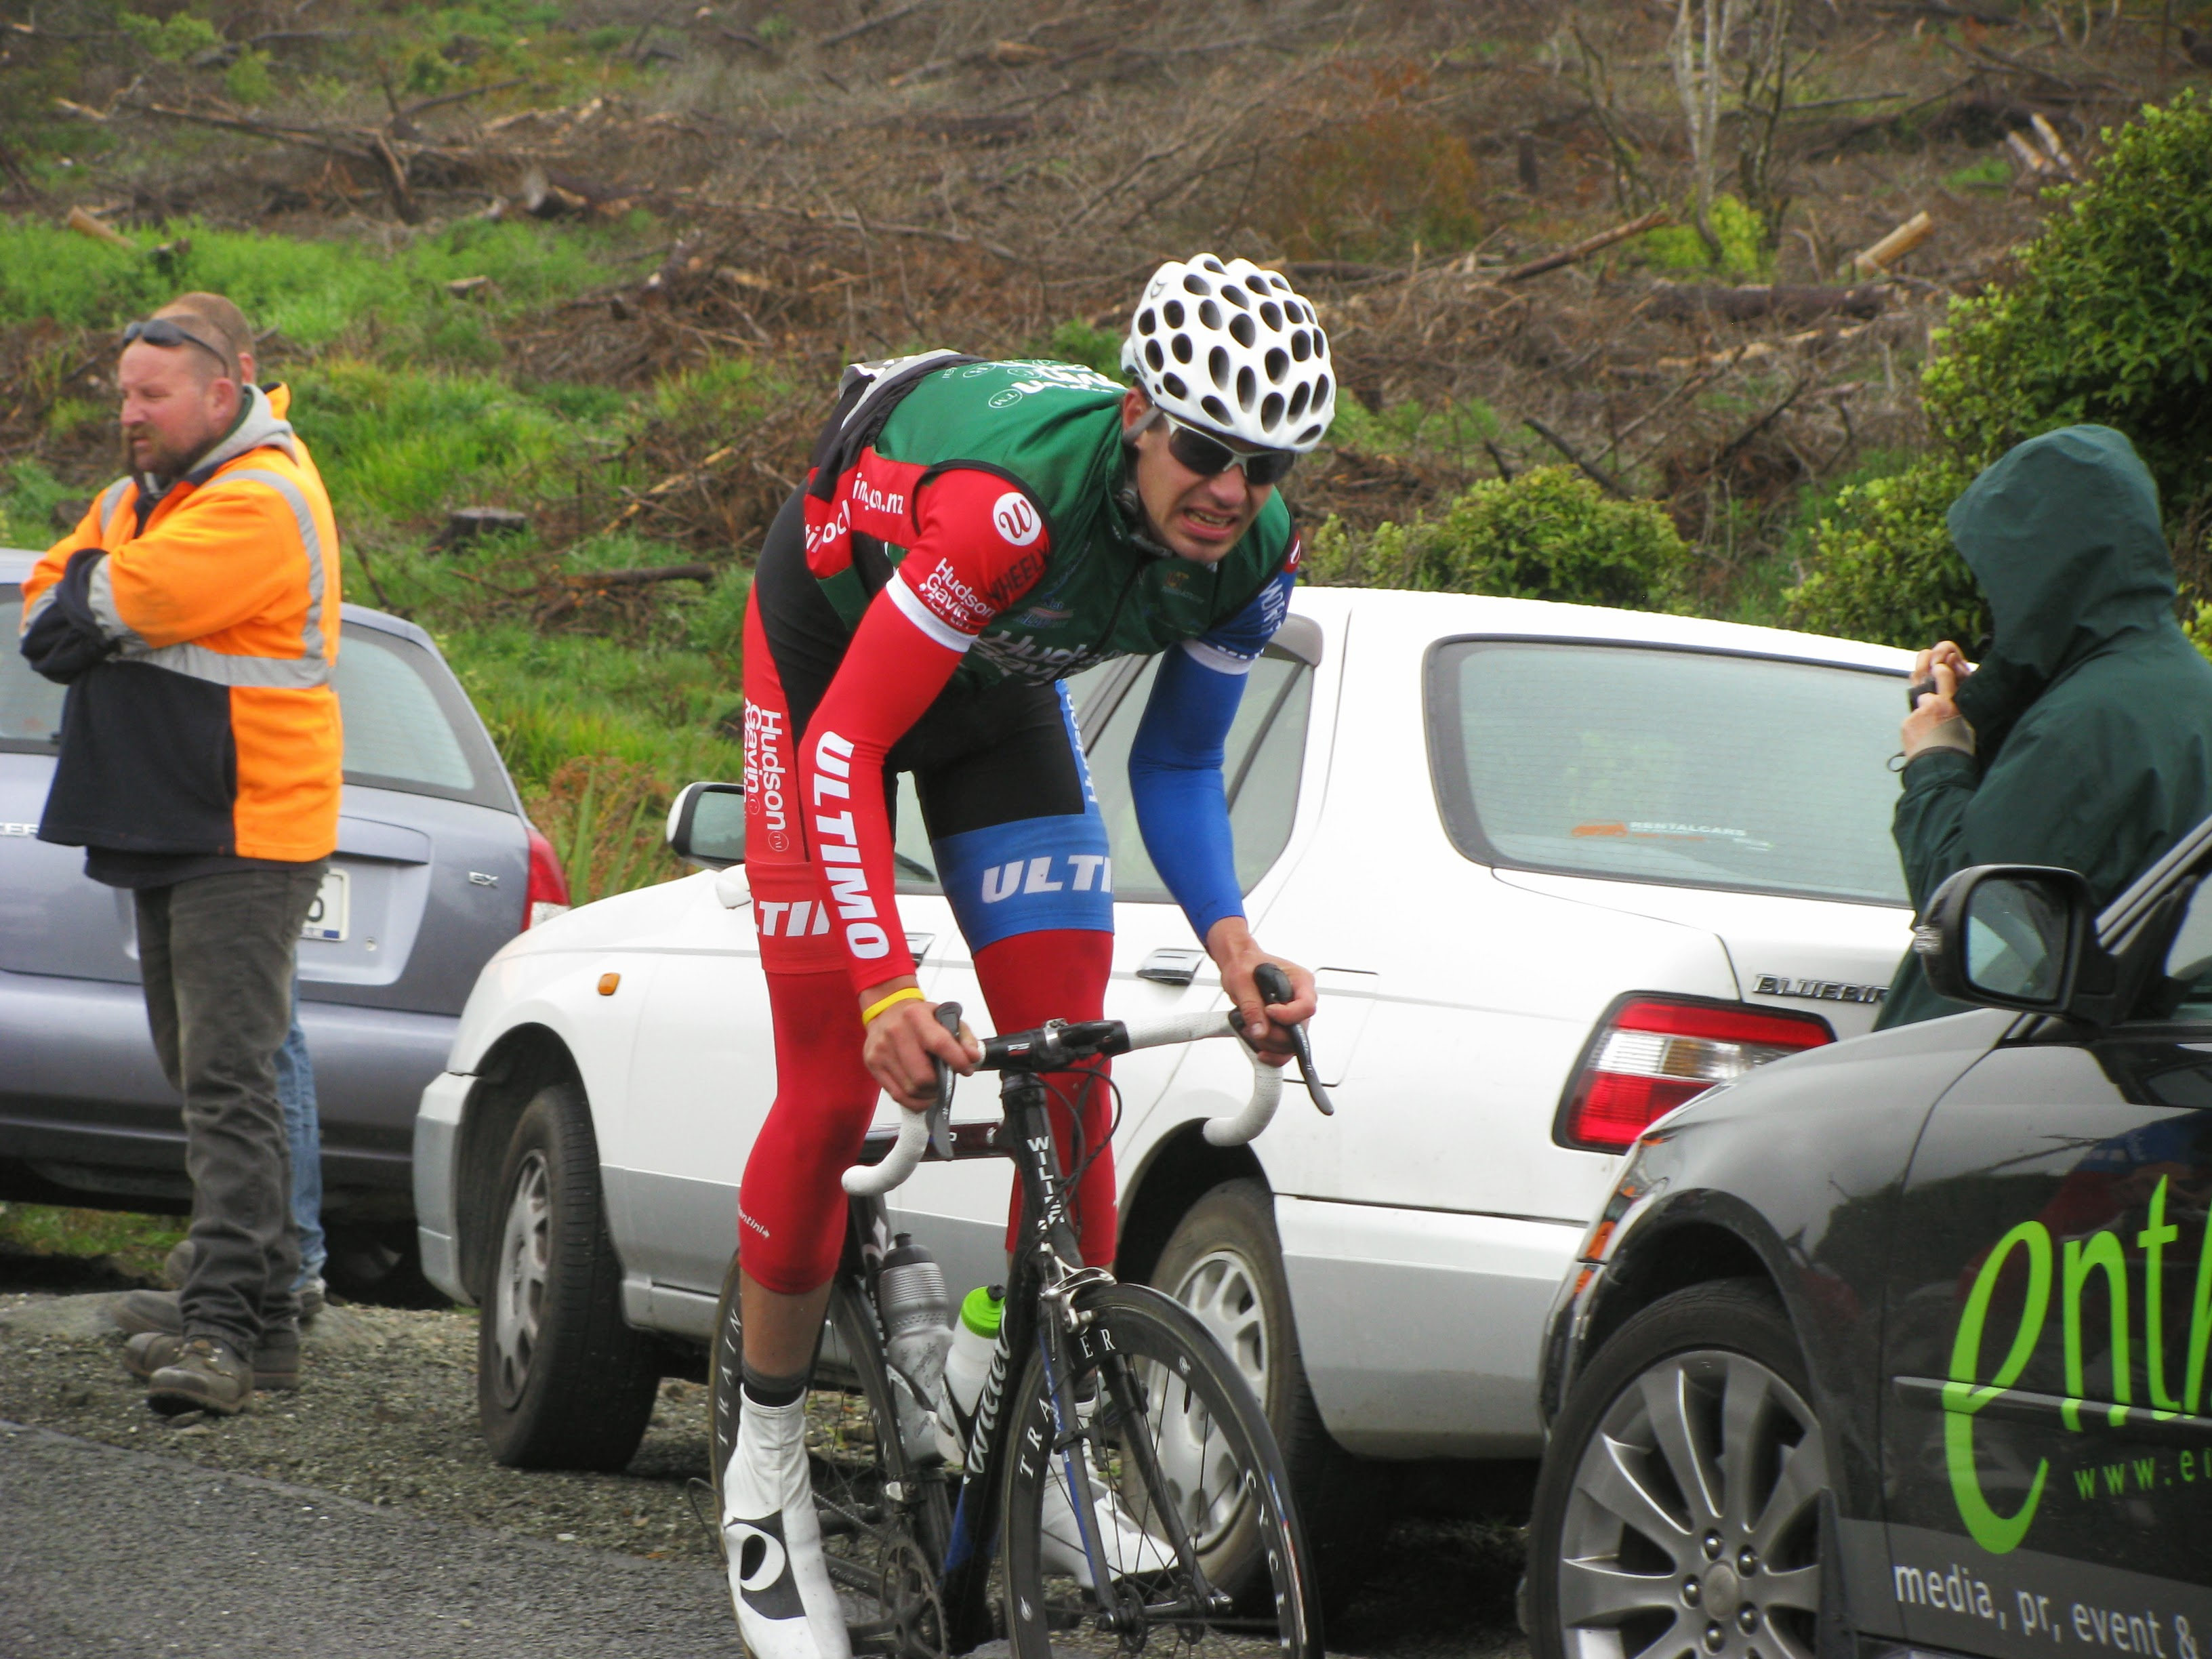 Richard Rollinson riding up Bluff hill in the Tour of Southland.